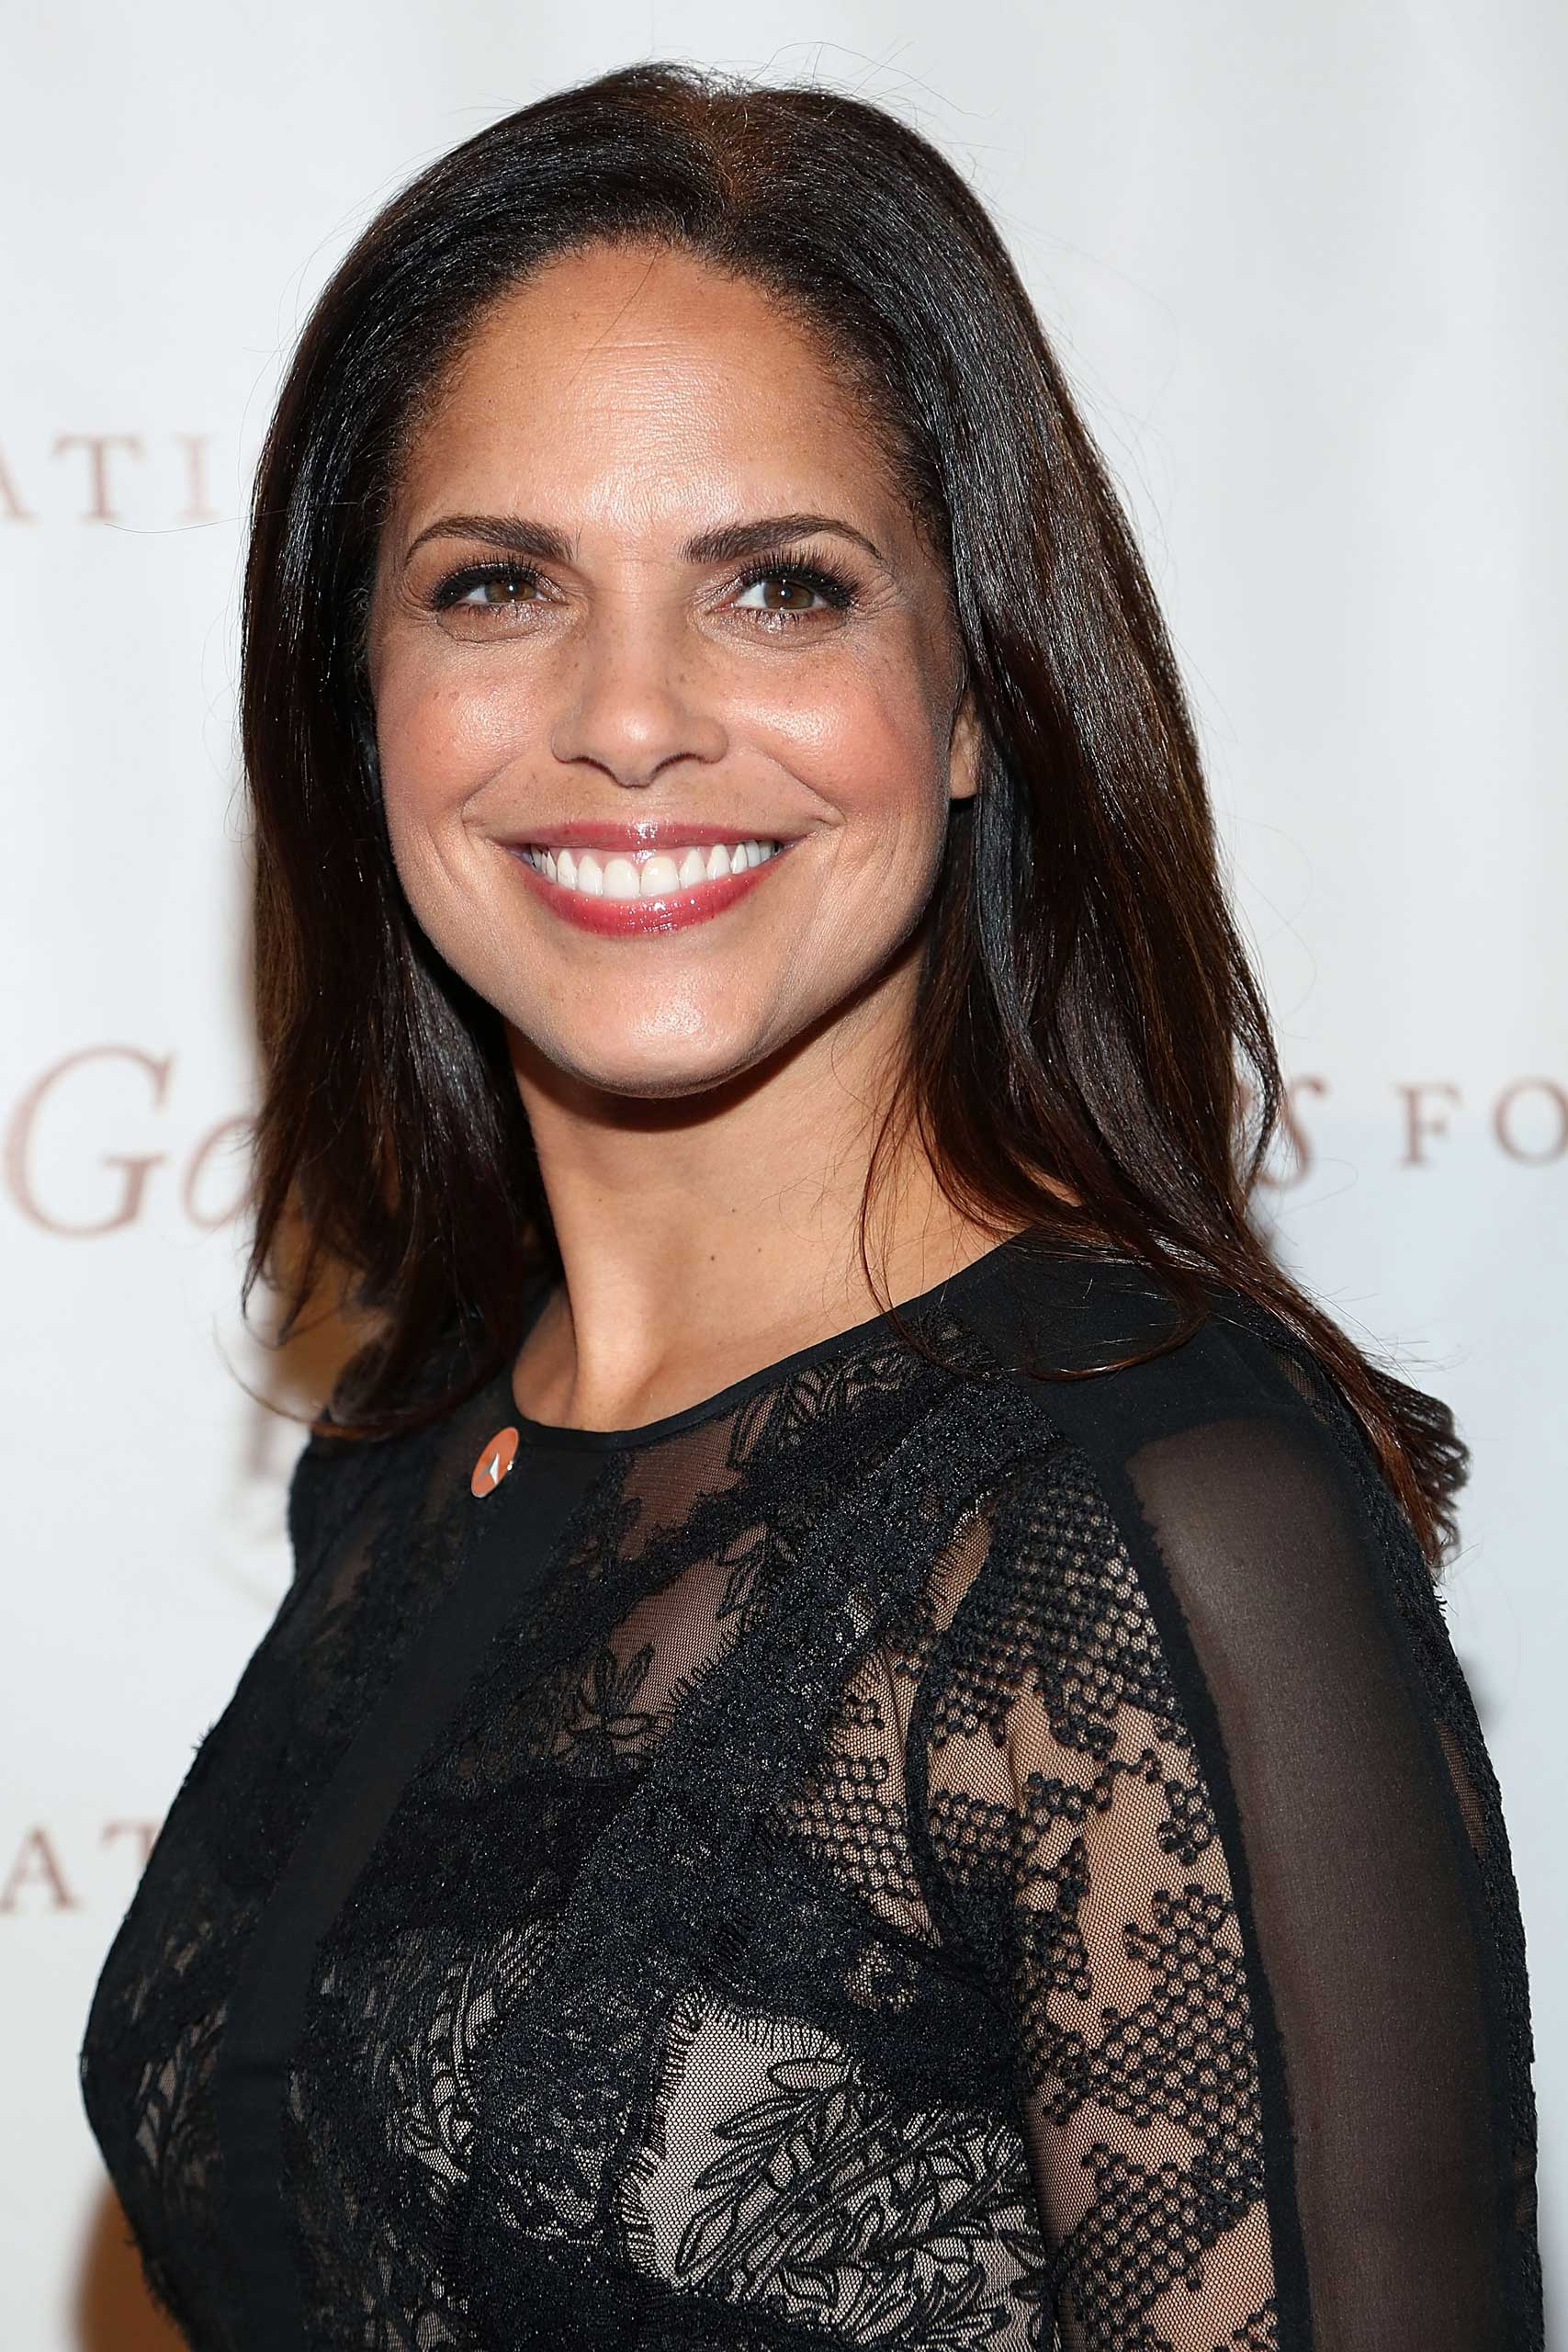 <b>Soledad O'Brien</b> The notable broadcast journalist and producer's parents are Australian and Cuban immigrants to the US.